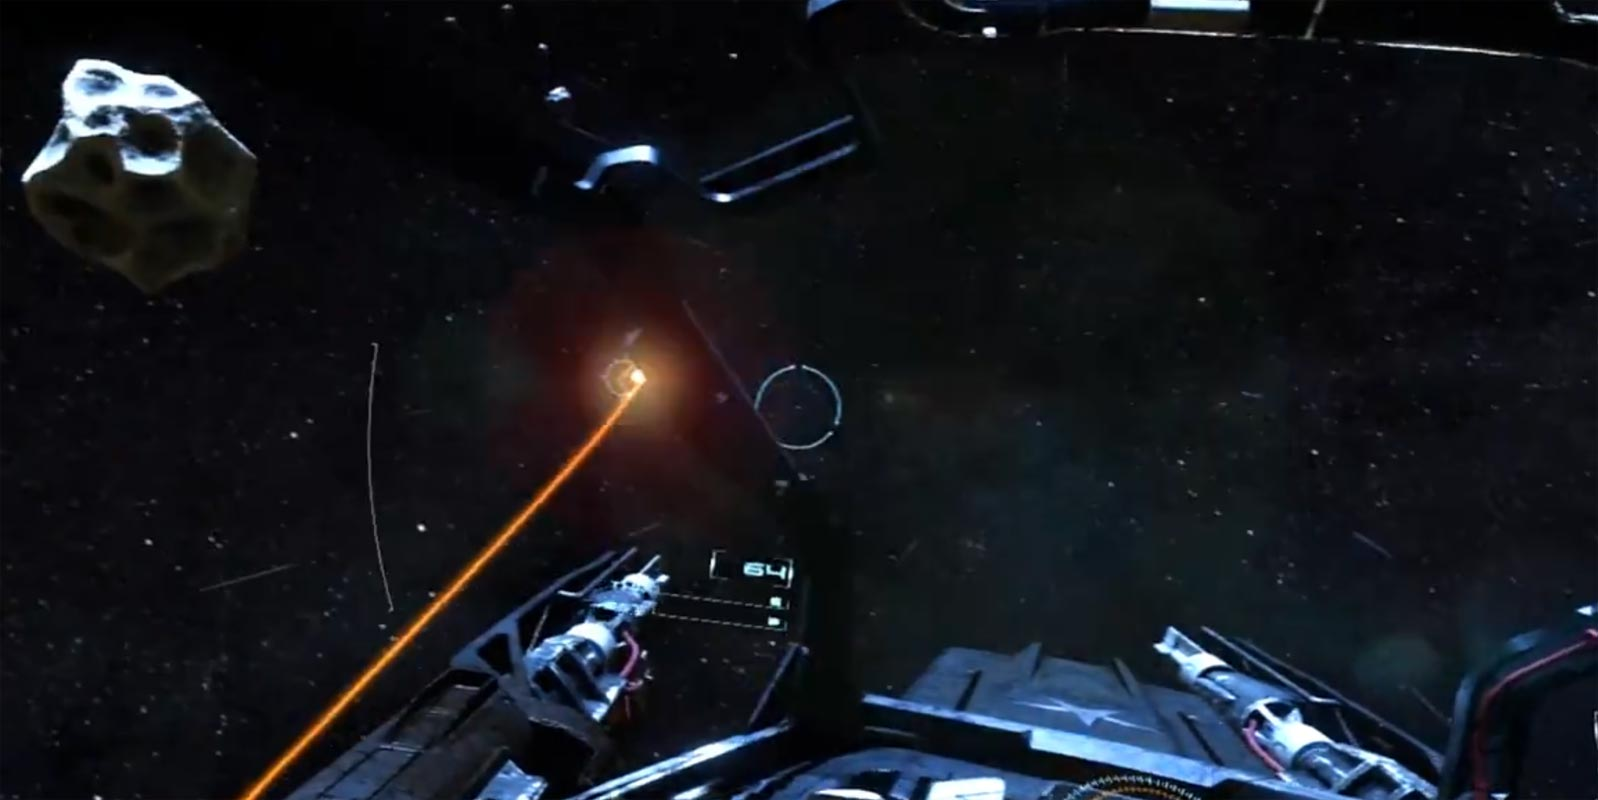 End Space Gear VR Apps